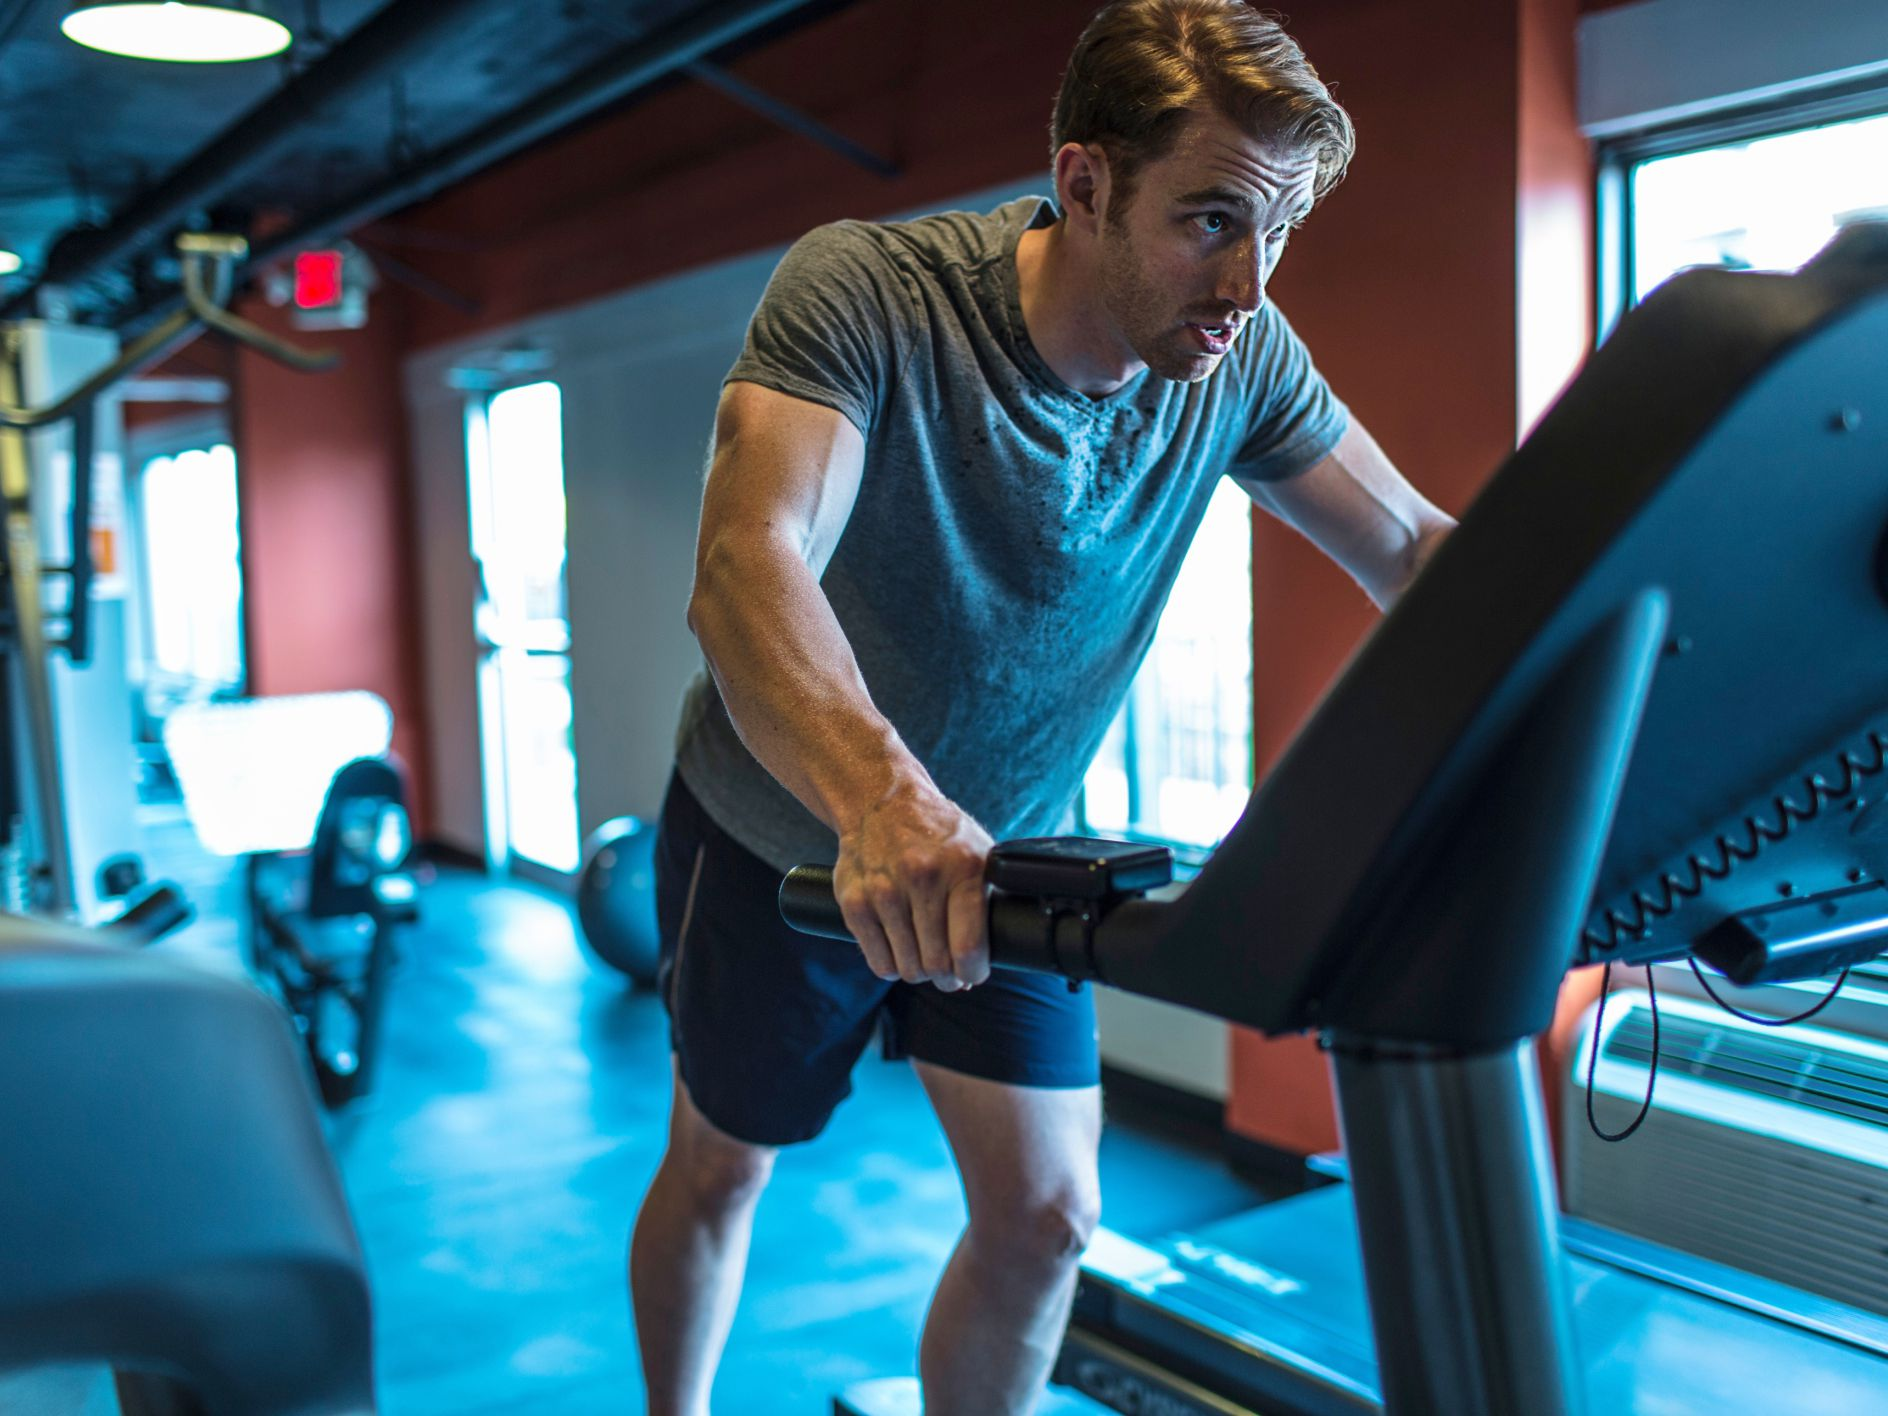 Stop Holding the Handrails on the Treadmill